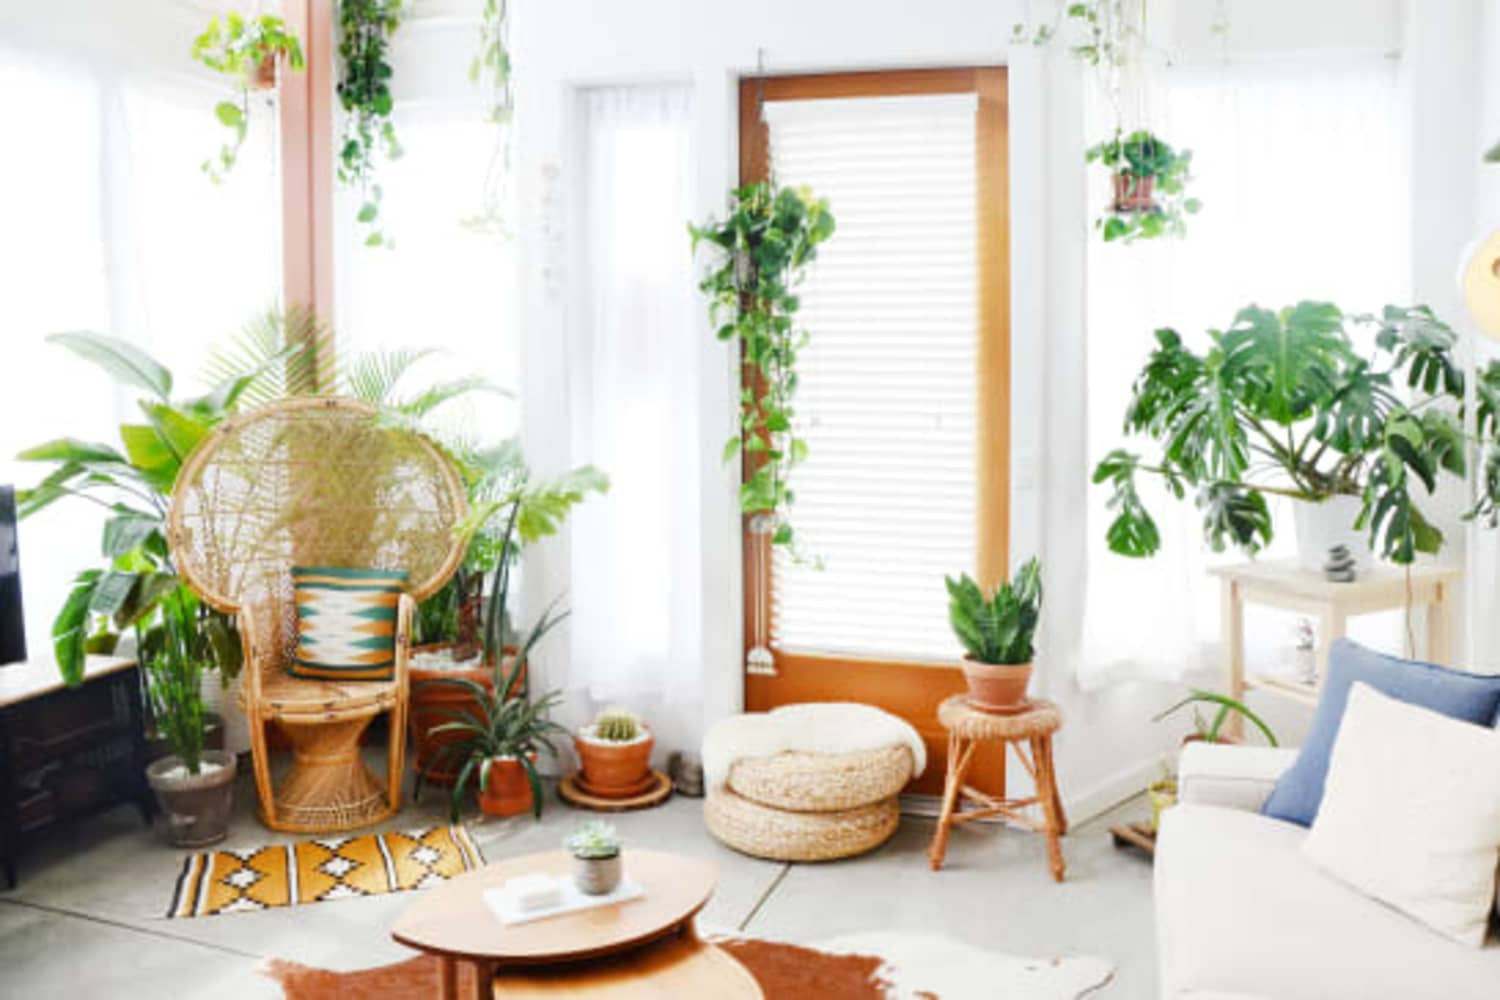 6 Fragrant Houseplants That Will Make Your Home Smell Incredible